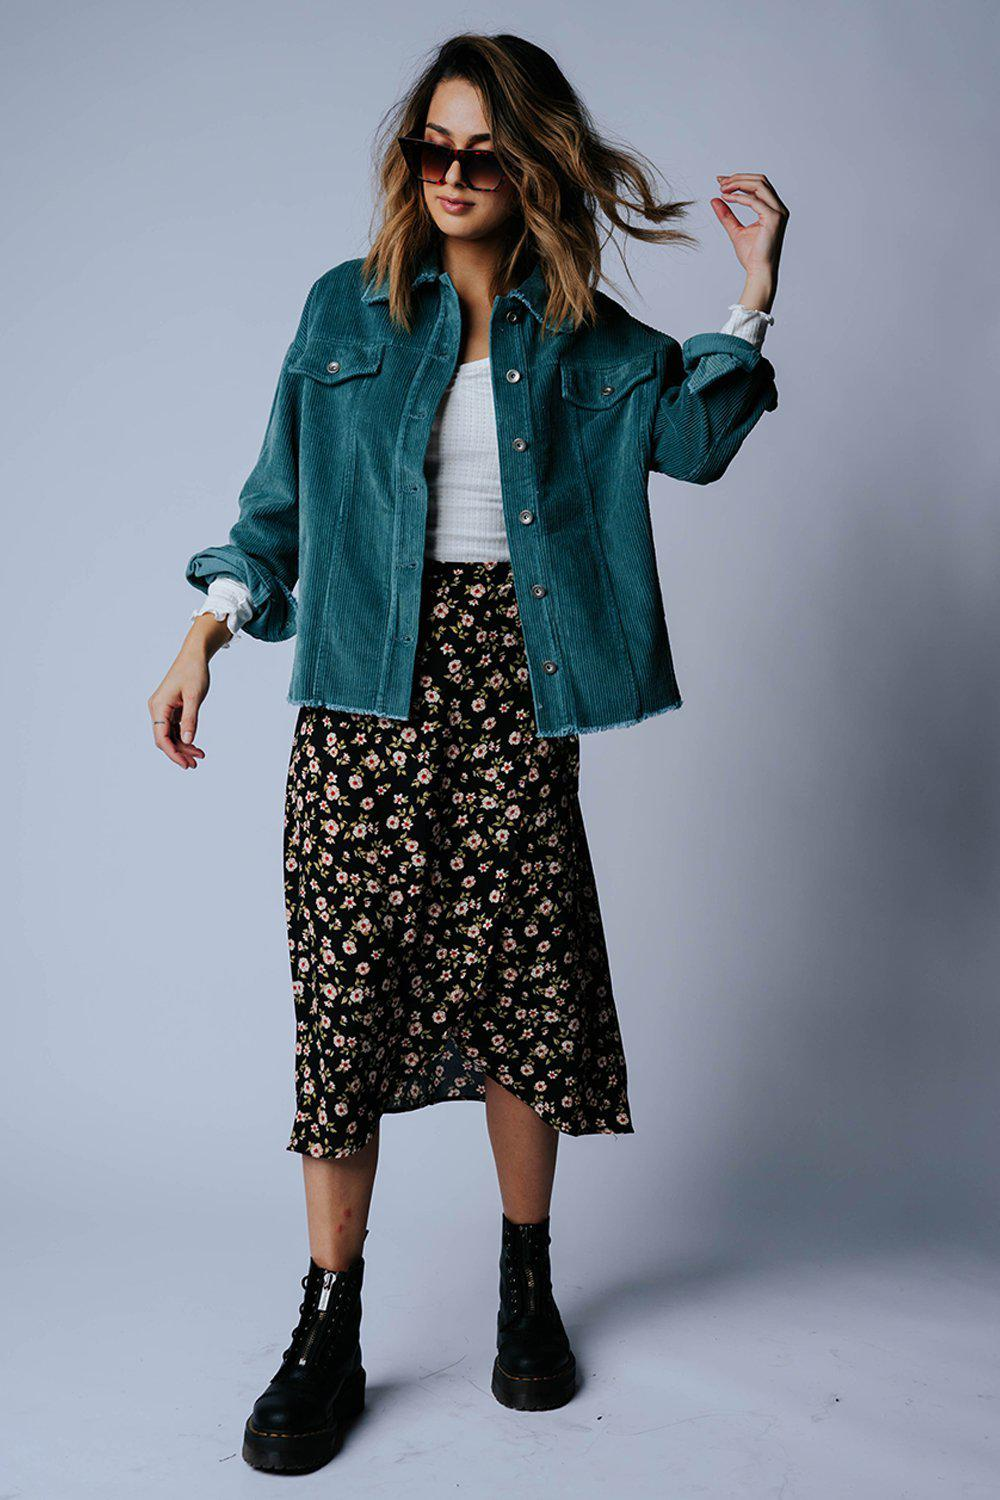 best_seller, That's My Girl Floral Midi Skirt in Coral Combo, Skirt, women's clothing, dresses, skirts, coats, jackets, shoes, boots, tops, tee shirts, jeans, free people, levi's, rollas, jumpsuits, bottoms, tops, sweaters, pullovers, pants, shorts, sweats,.